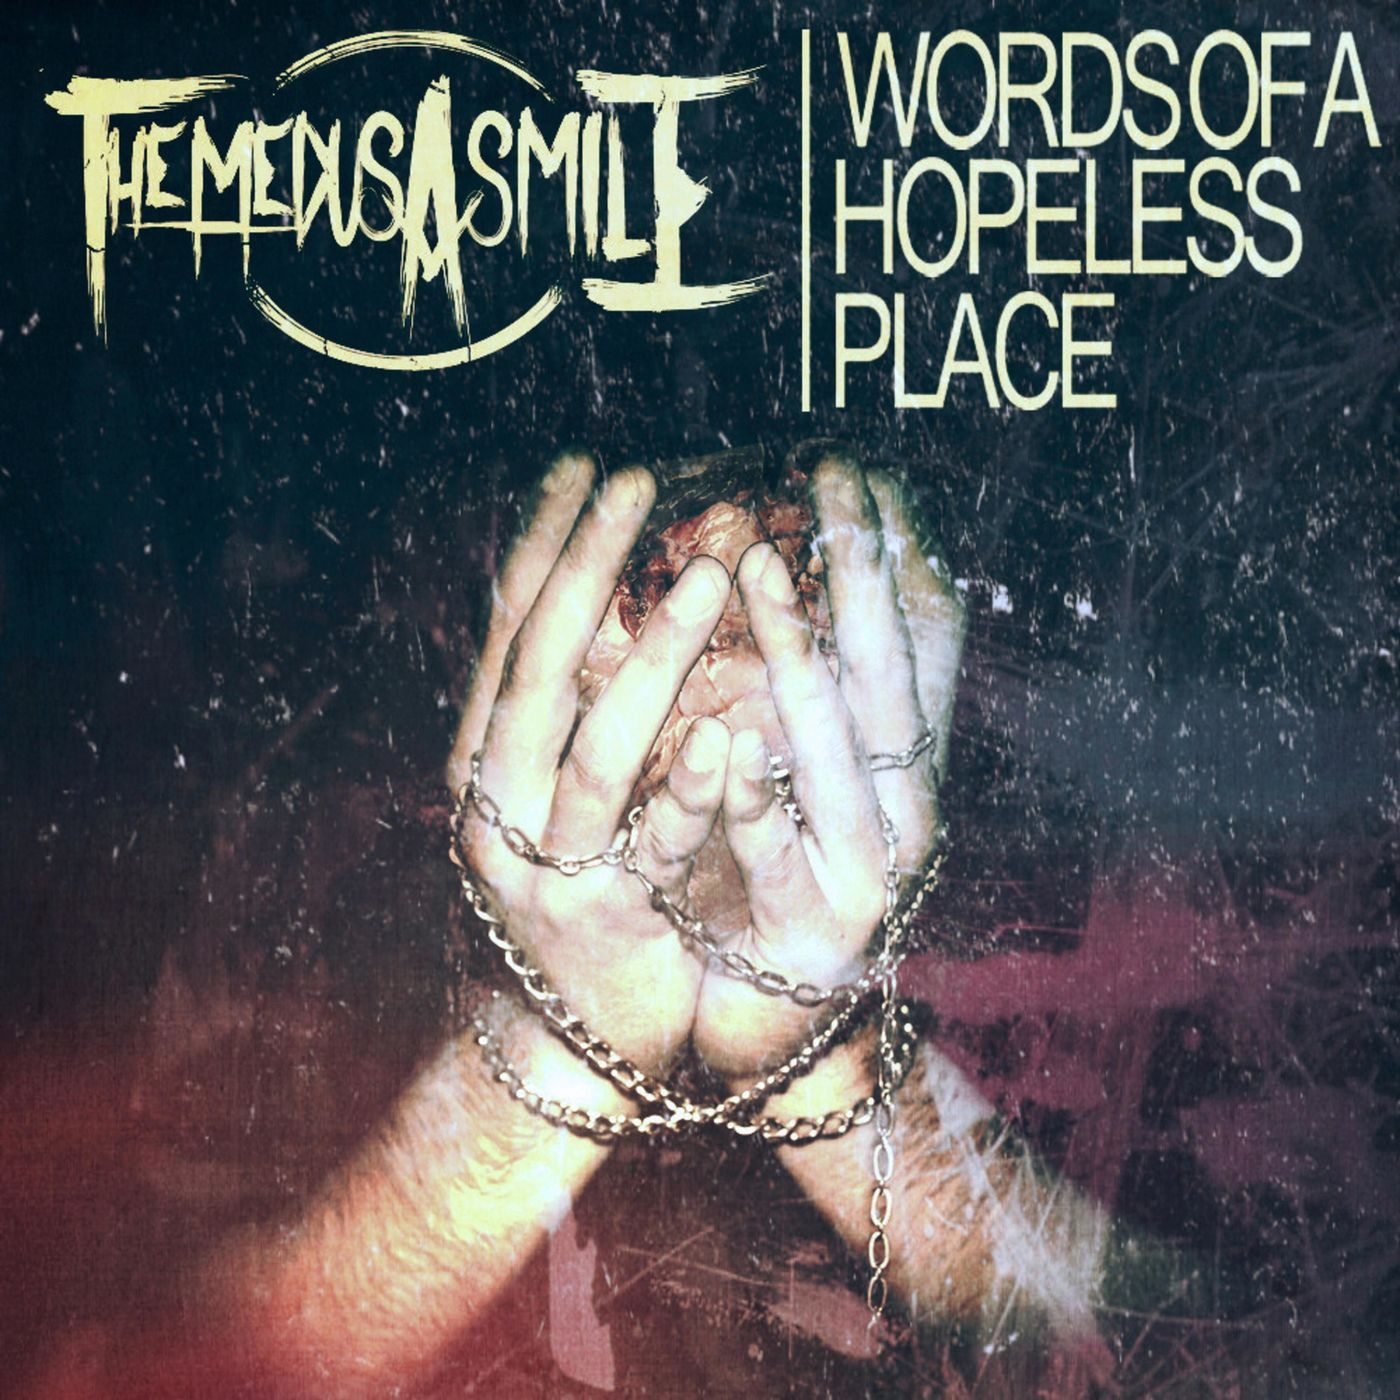 The Medusa Smile - Words Of A Hopeless Place [EP] (2013)